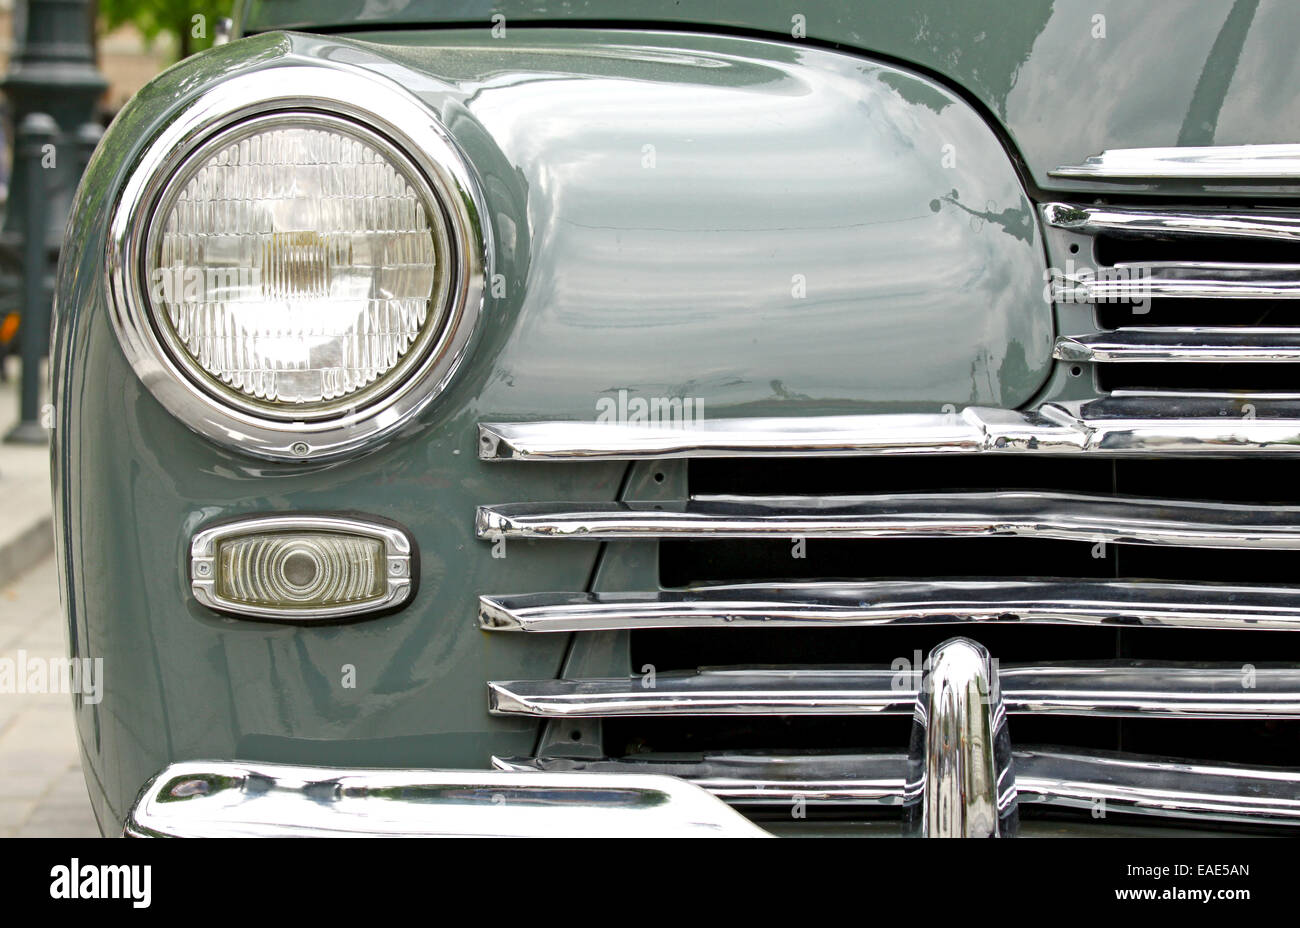 Front lamp and chrome bumper of an old vintage classic car - Stock Image